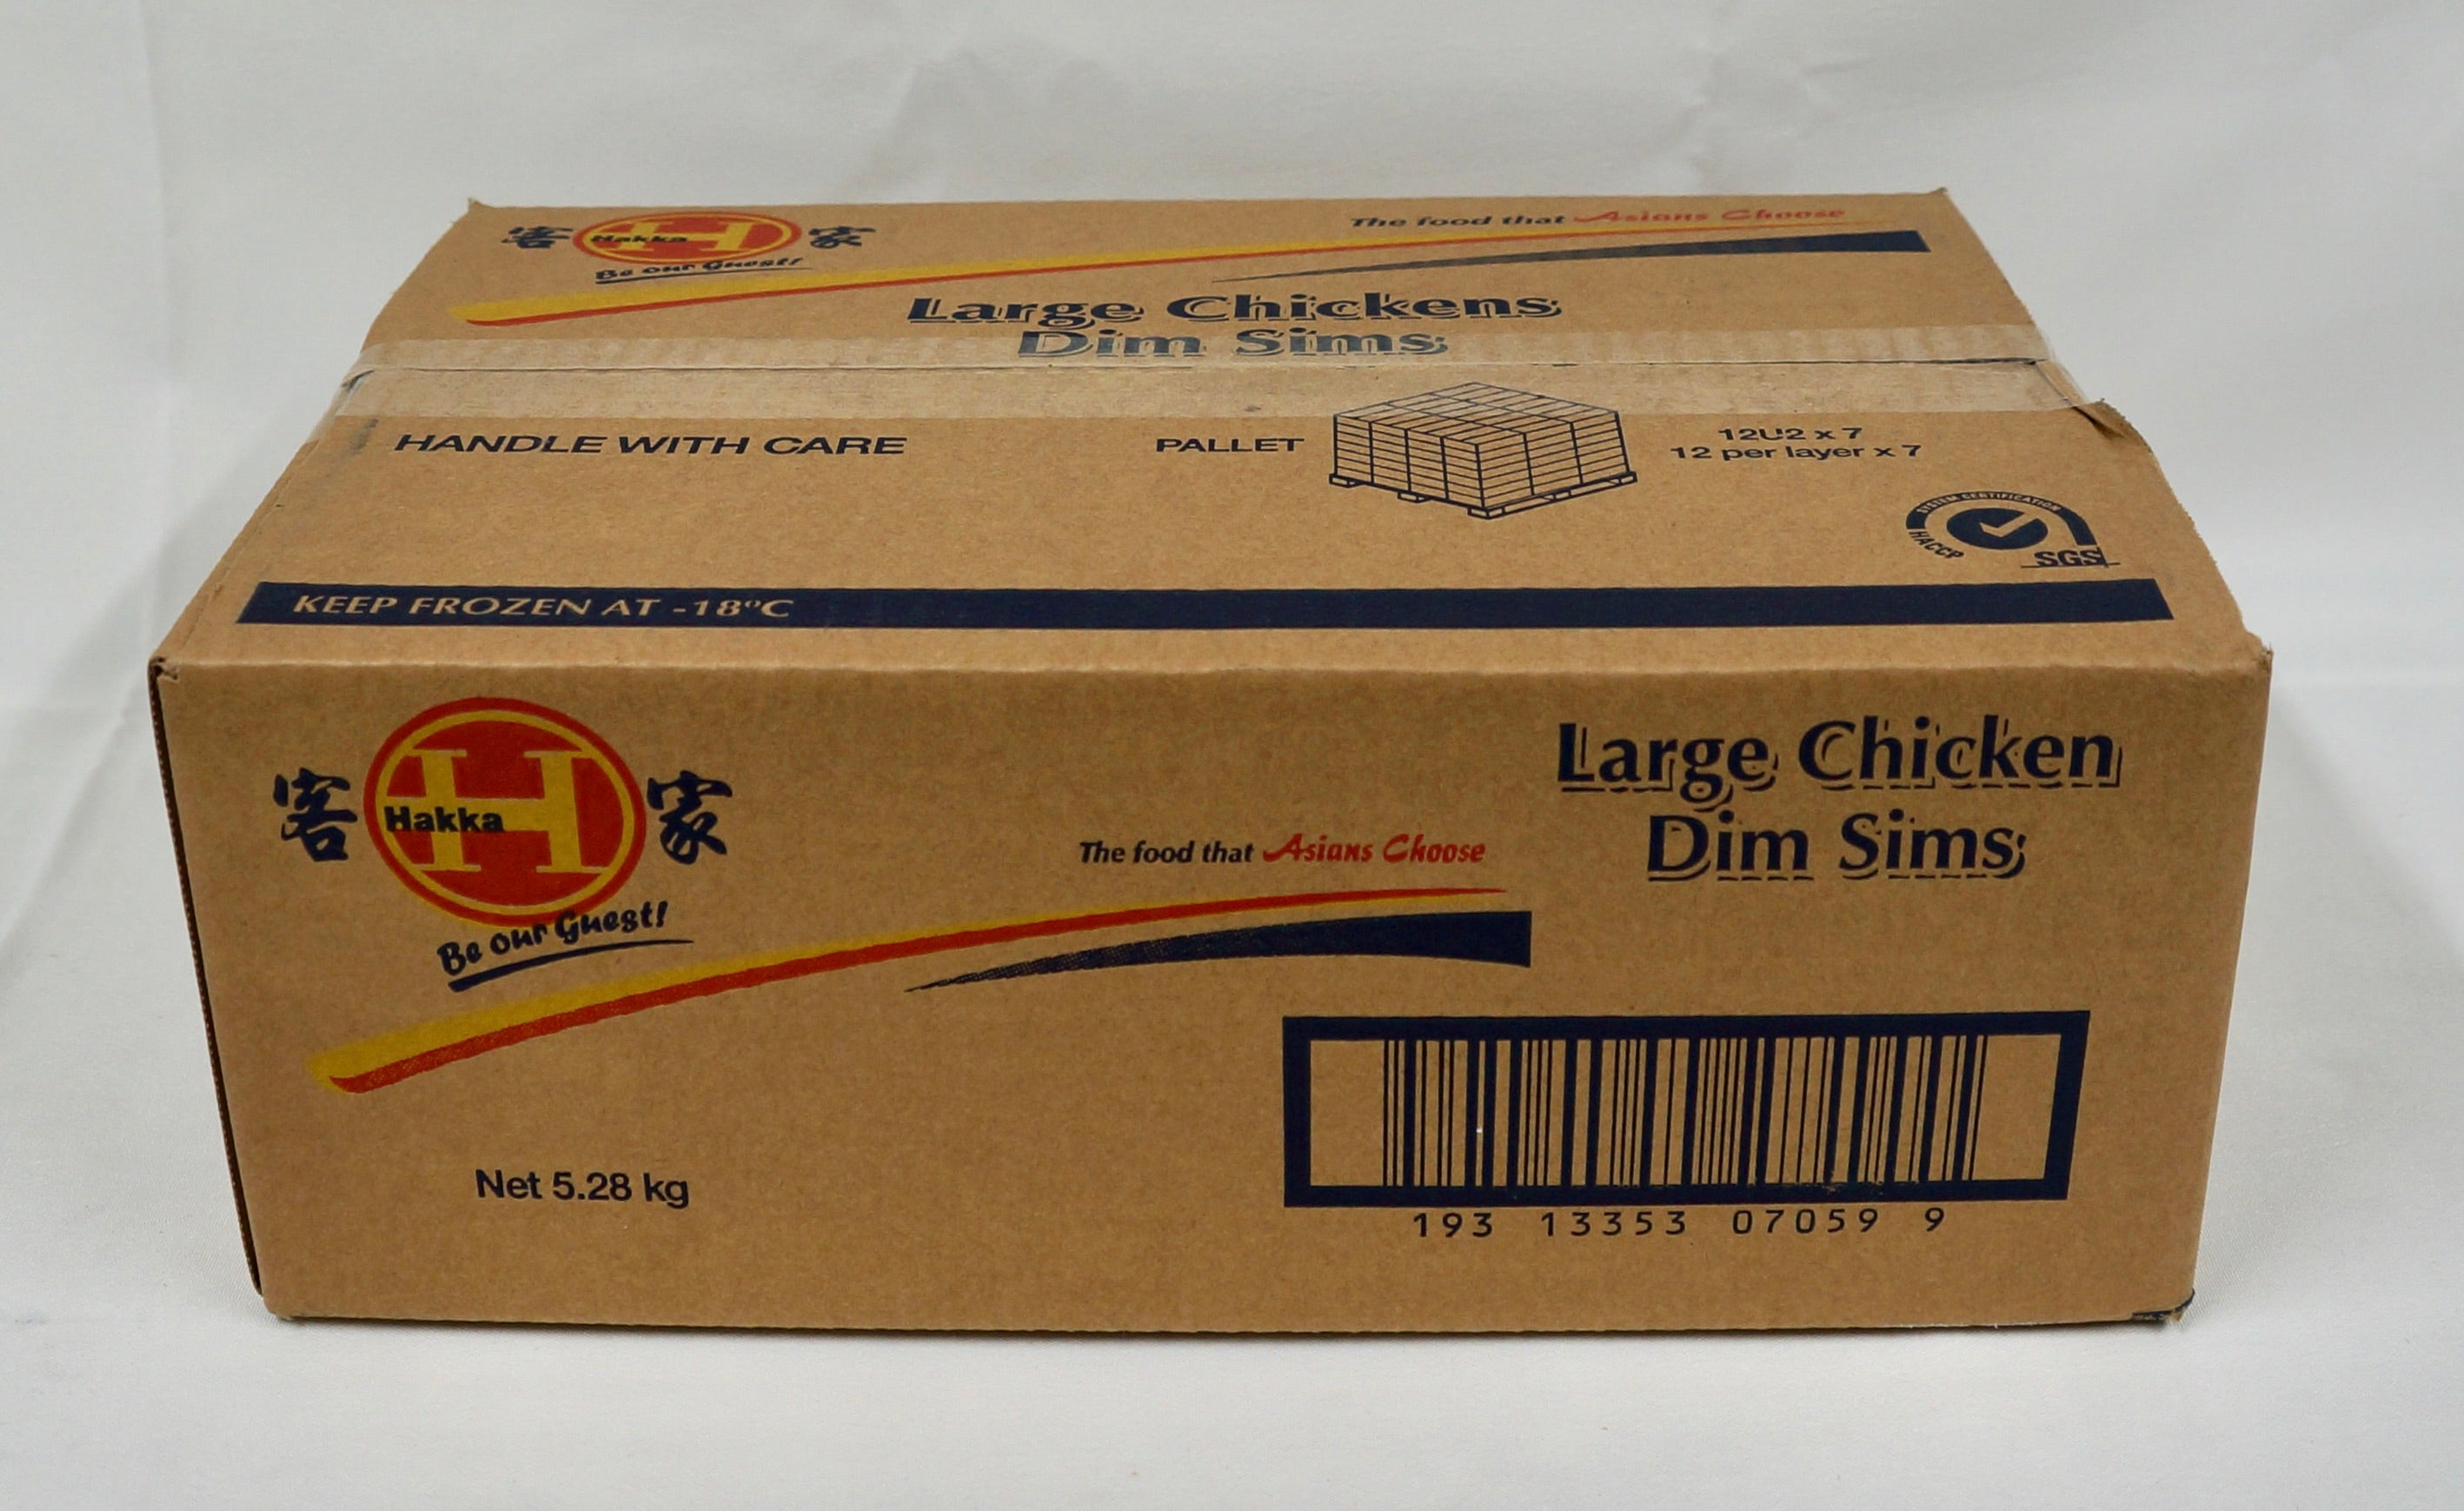 Chicken Dim Sims Large (48 pieces per ctn)